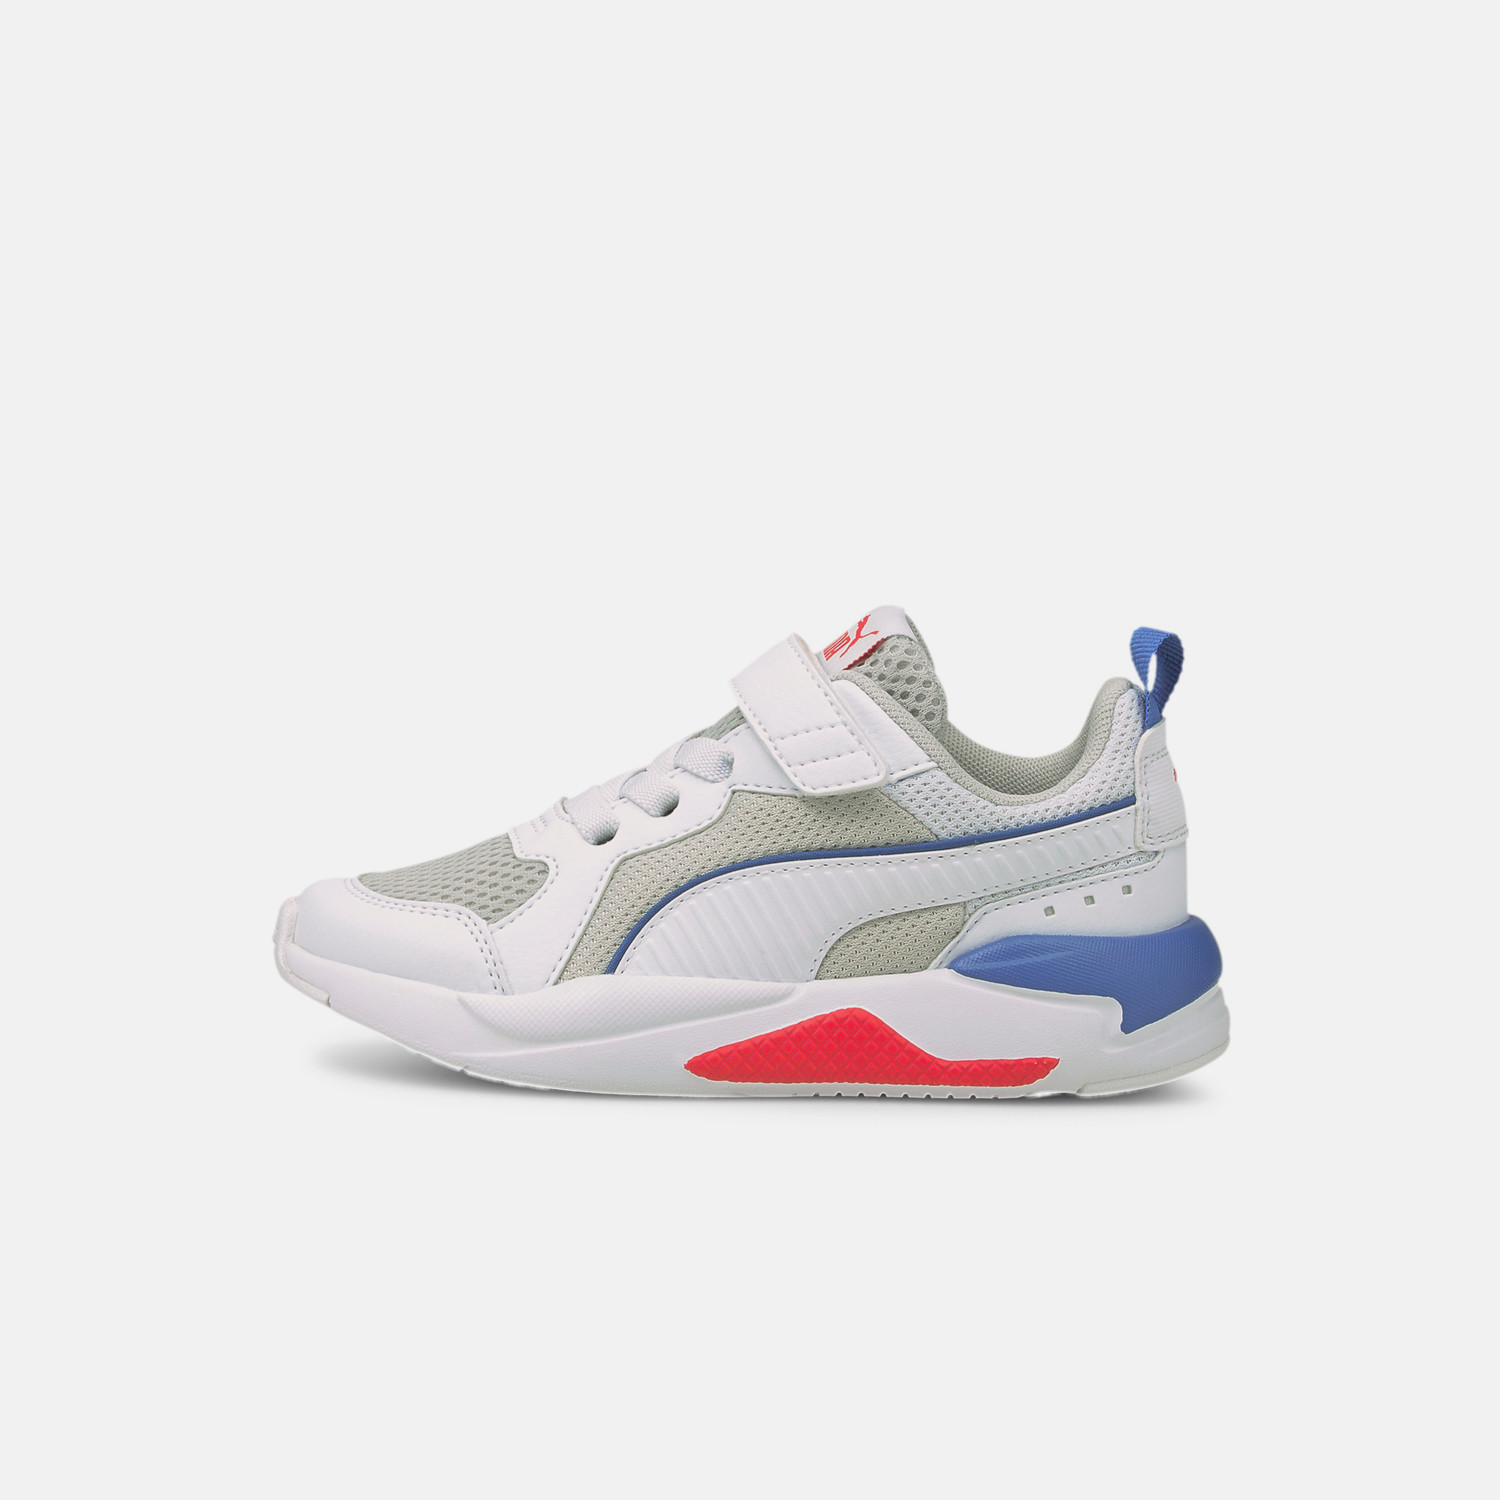 Puma X-Ray Ac Ps Footwear (9000072718_51278)